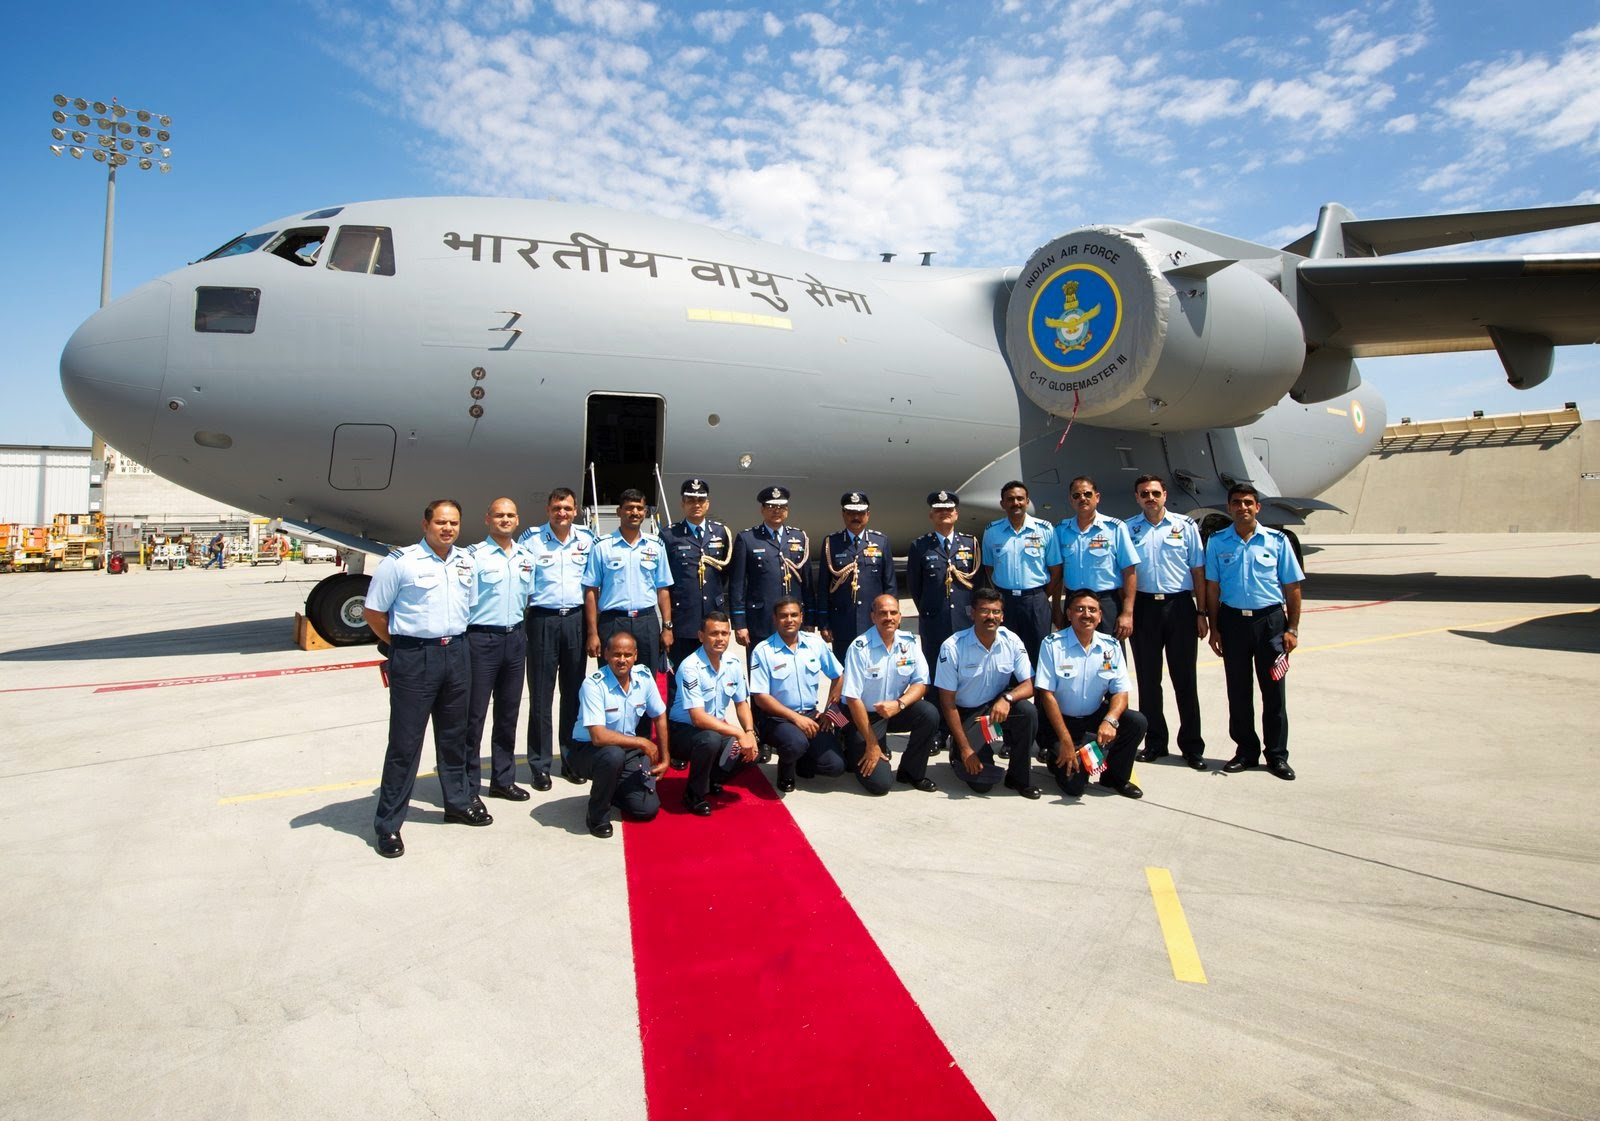 indian airforce The latest tweets from indian air force (@iaf_mcc) indian air force - media co-ordination centre new delhi,india.